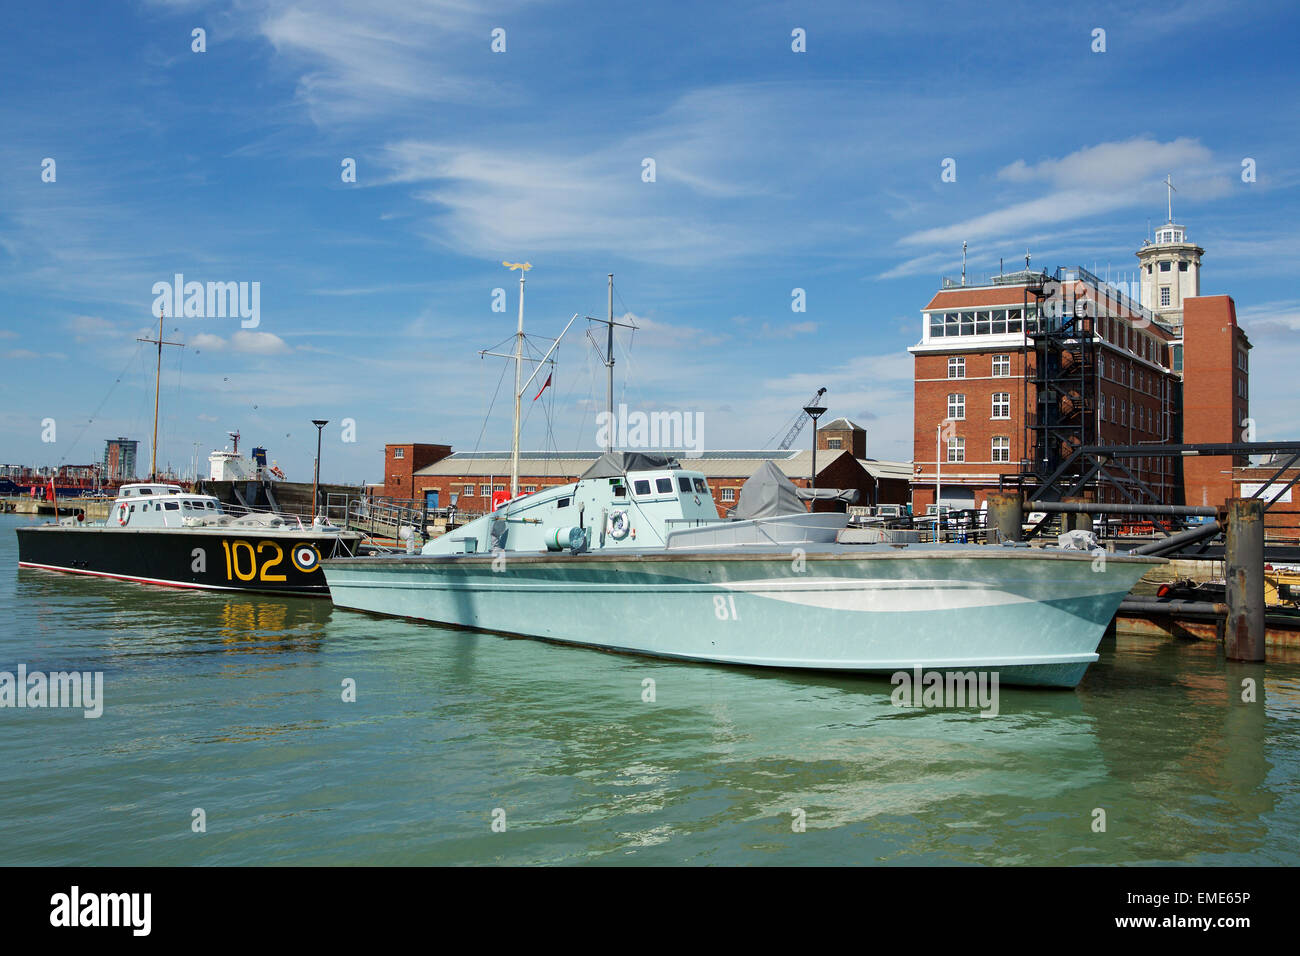 A high speed launch and motor torpedo boat moored in Portsmouth ...